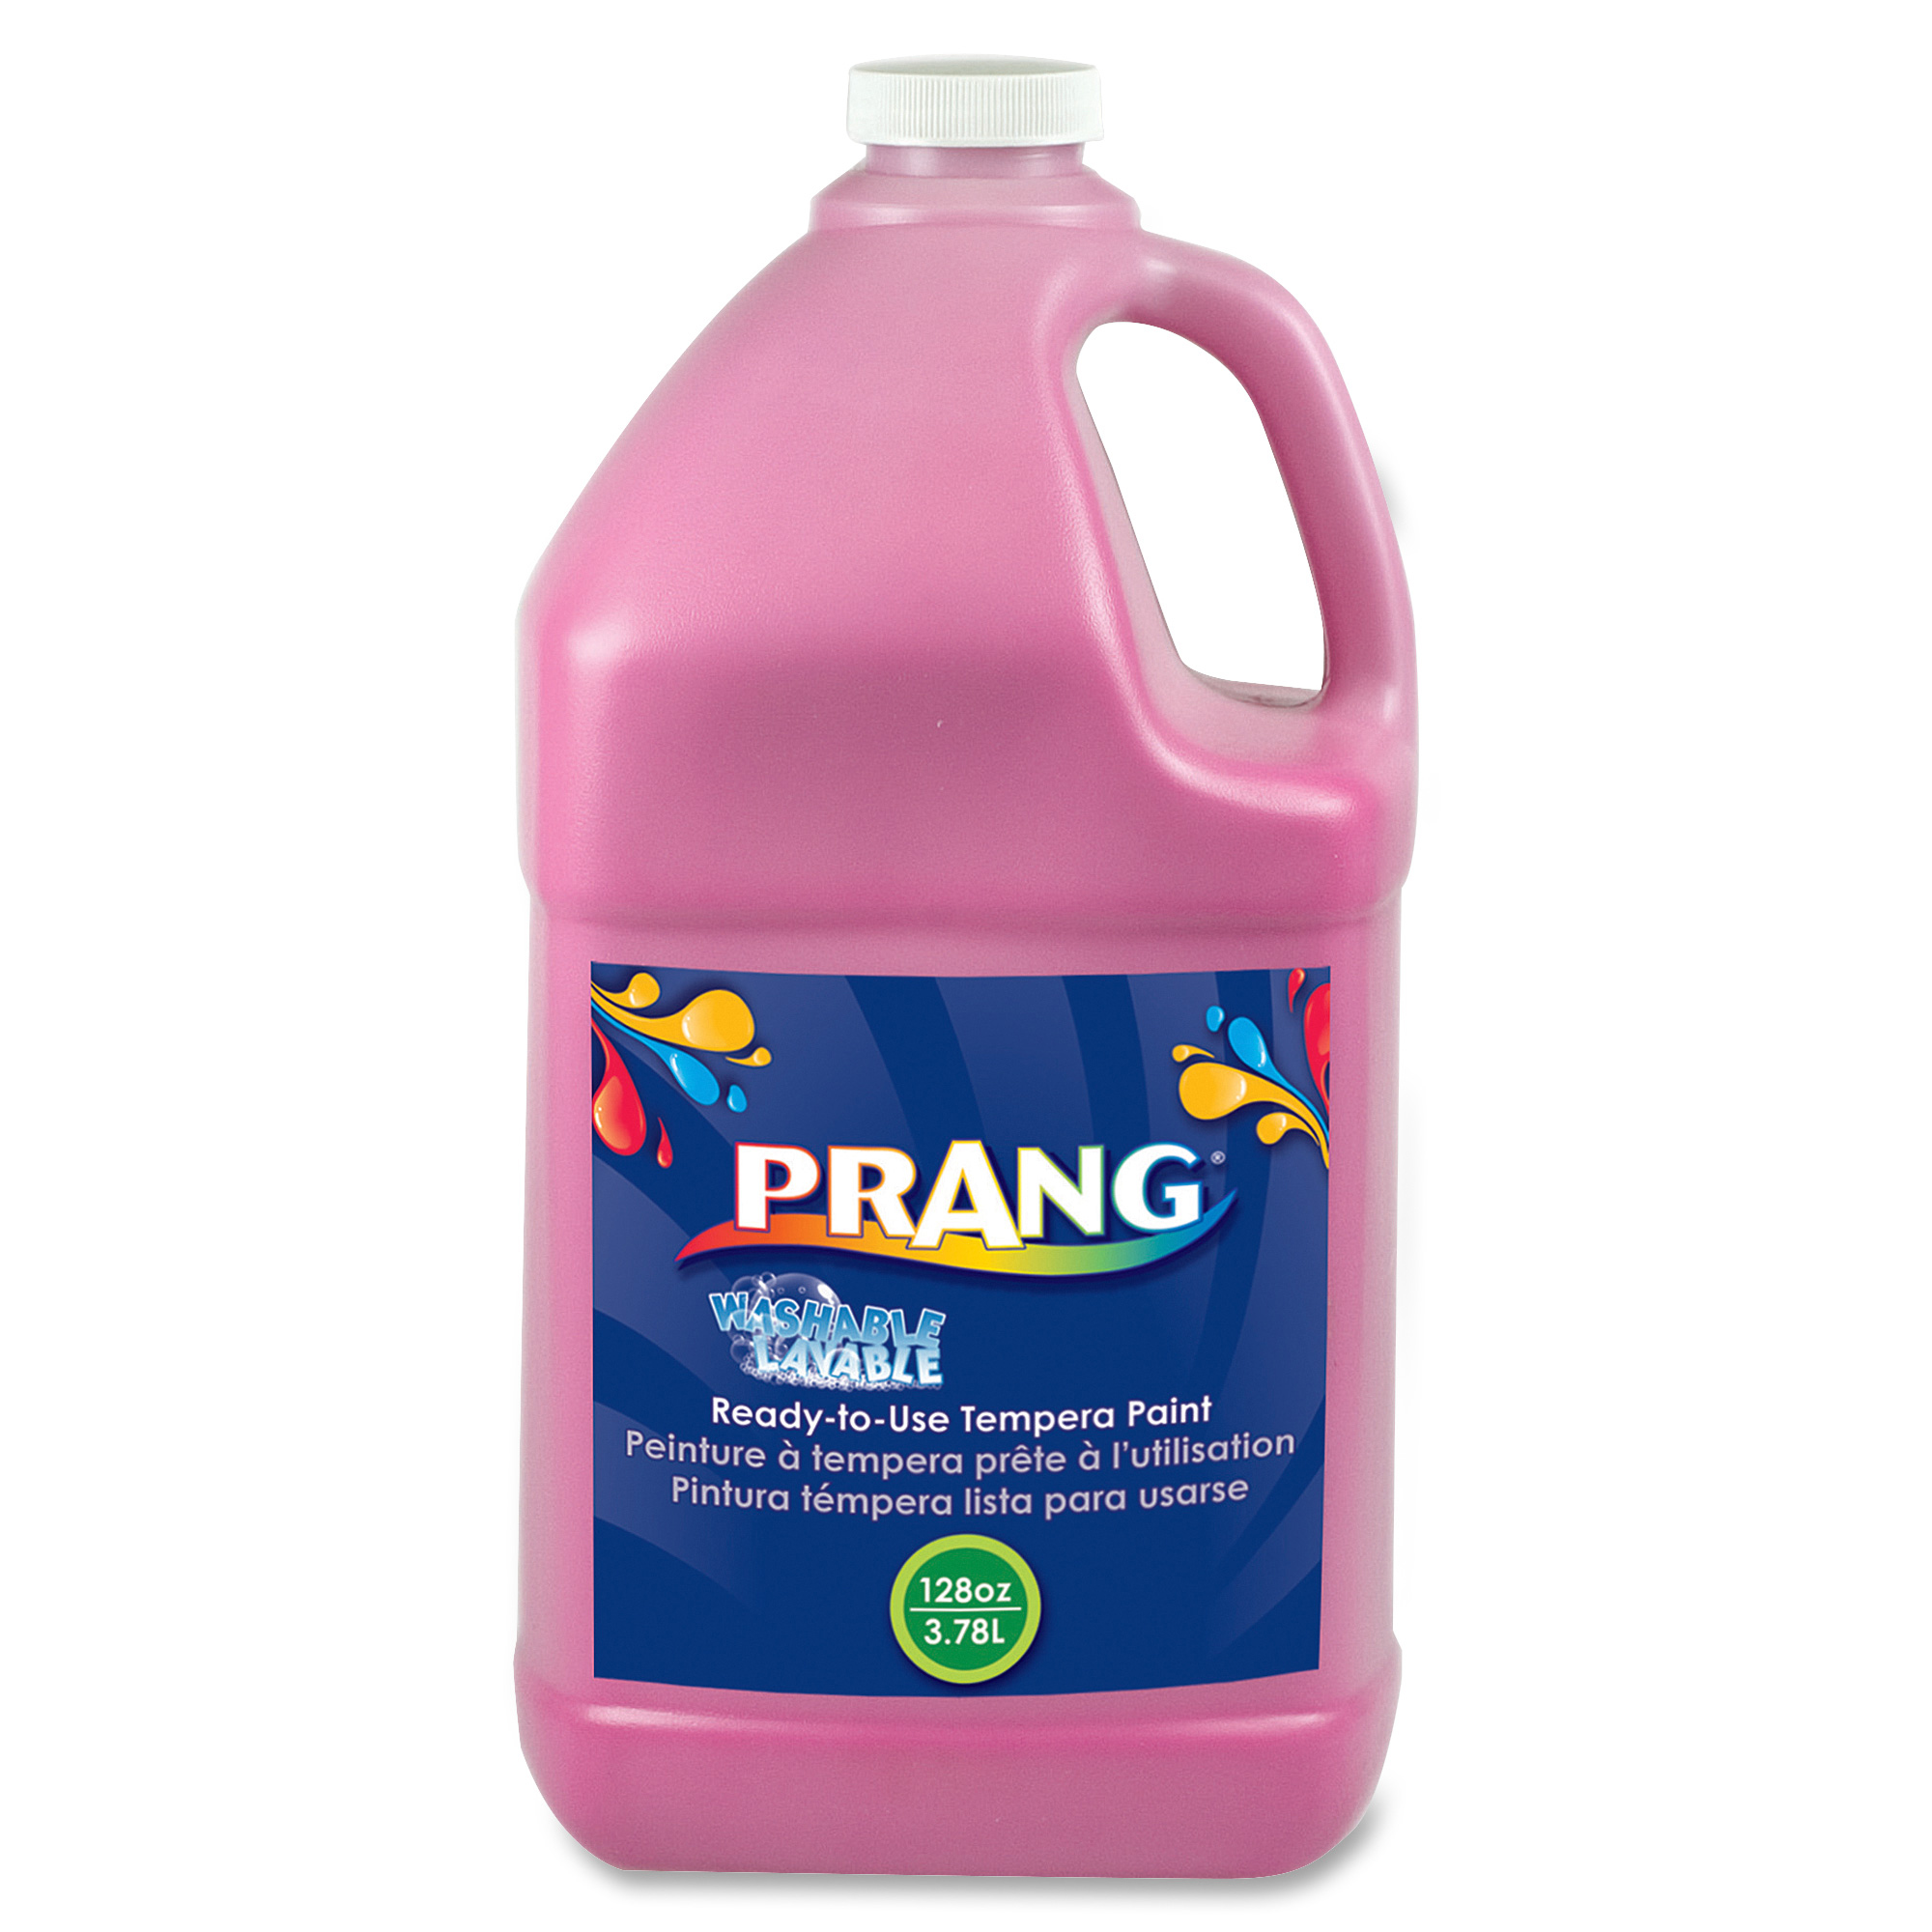 Prang 1 gal. Ultra-washable Tempera Paint